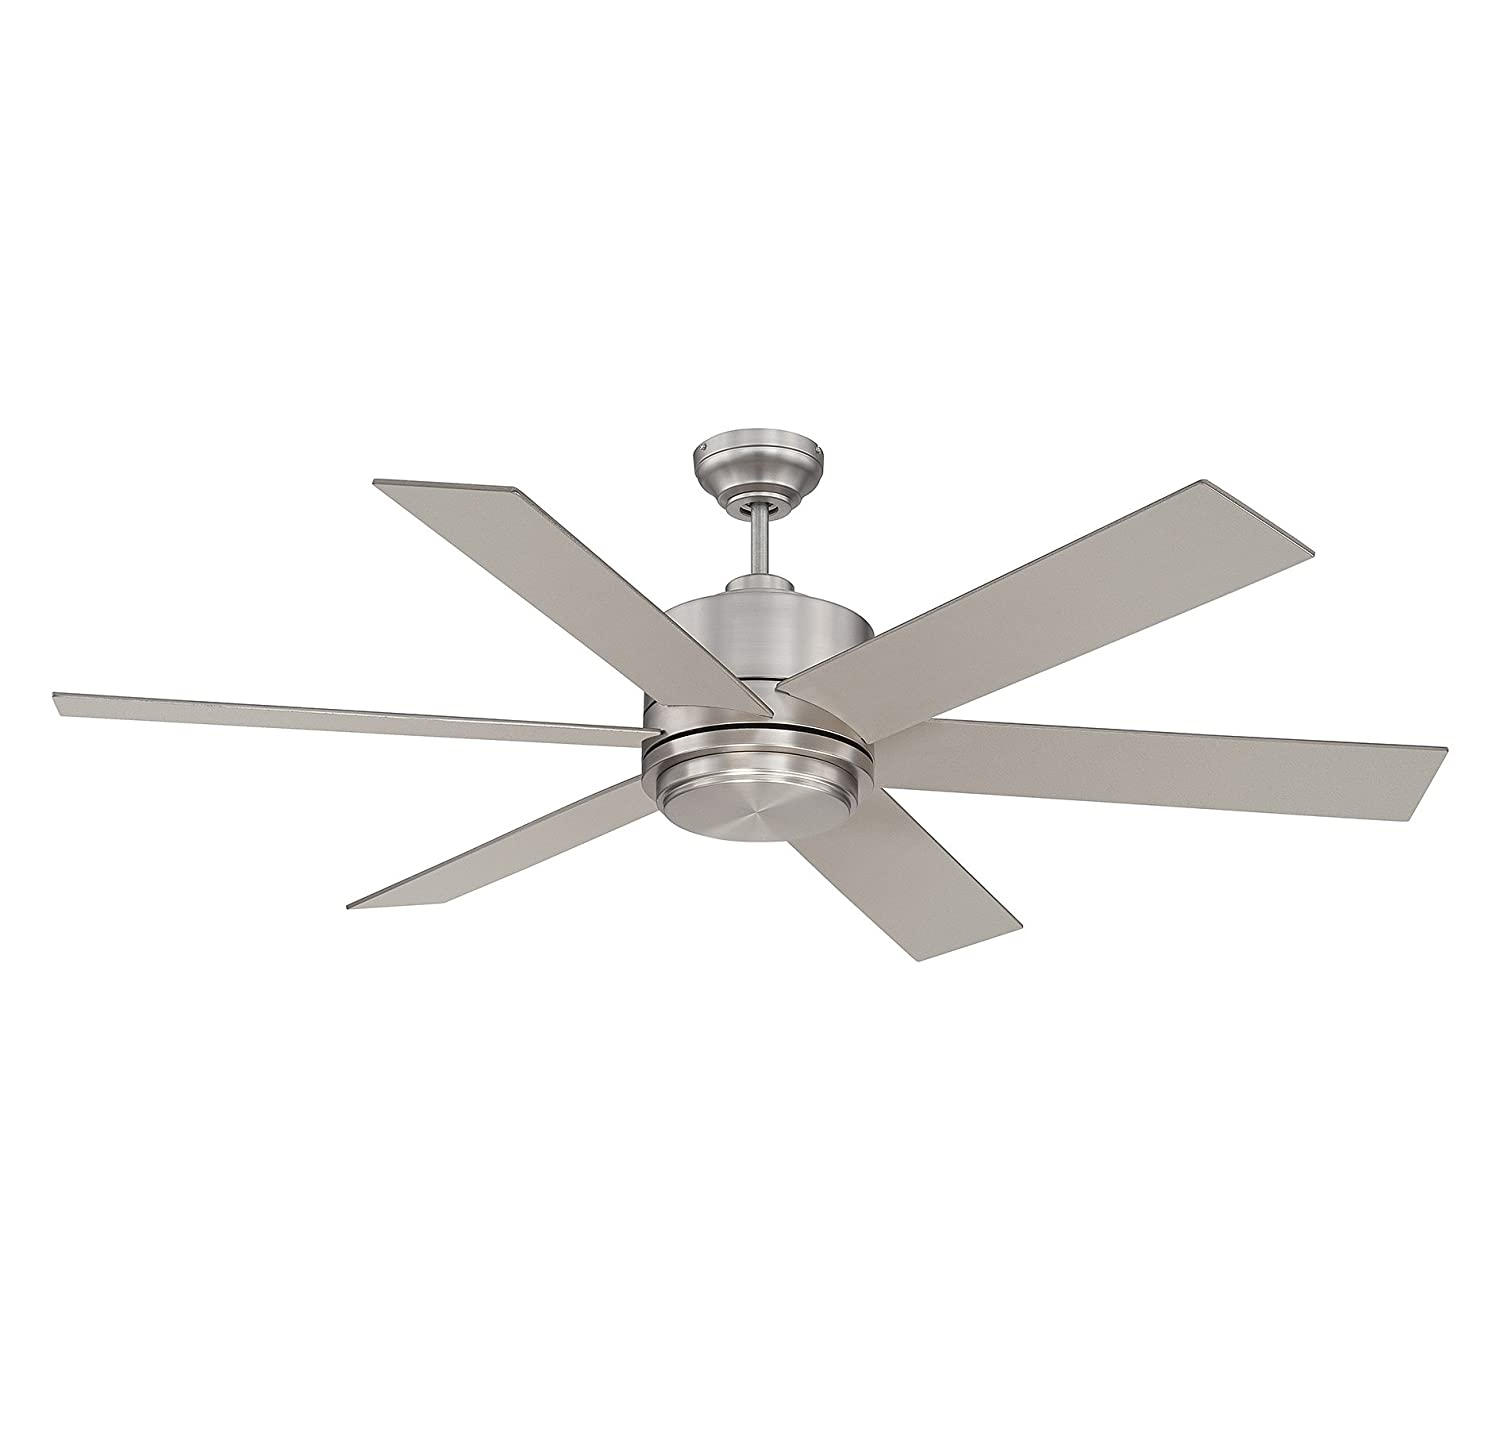 "Savoy House 60 820 6SV SN Velocity 60"" Ceiling Fan in Satin Nickel"